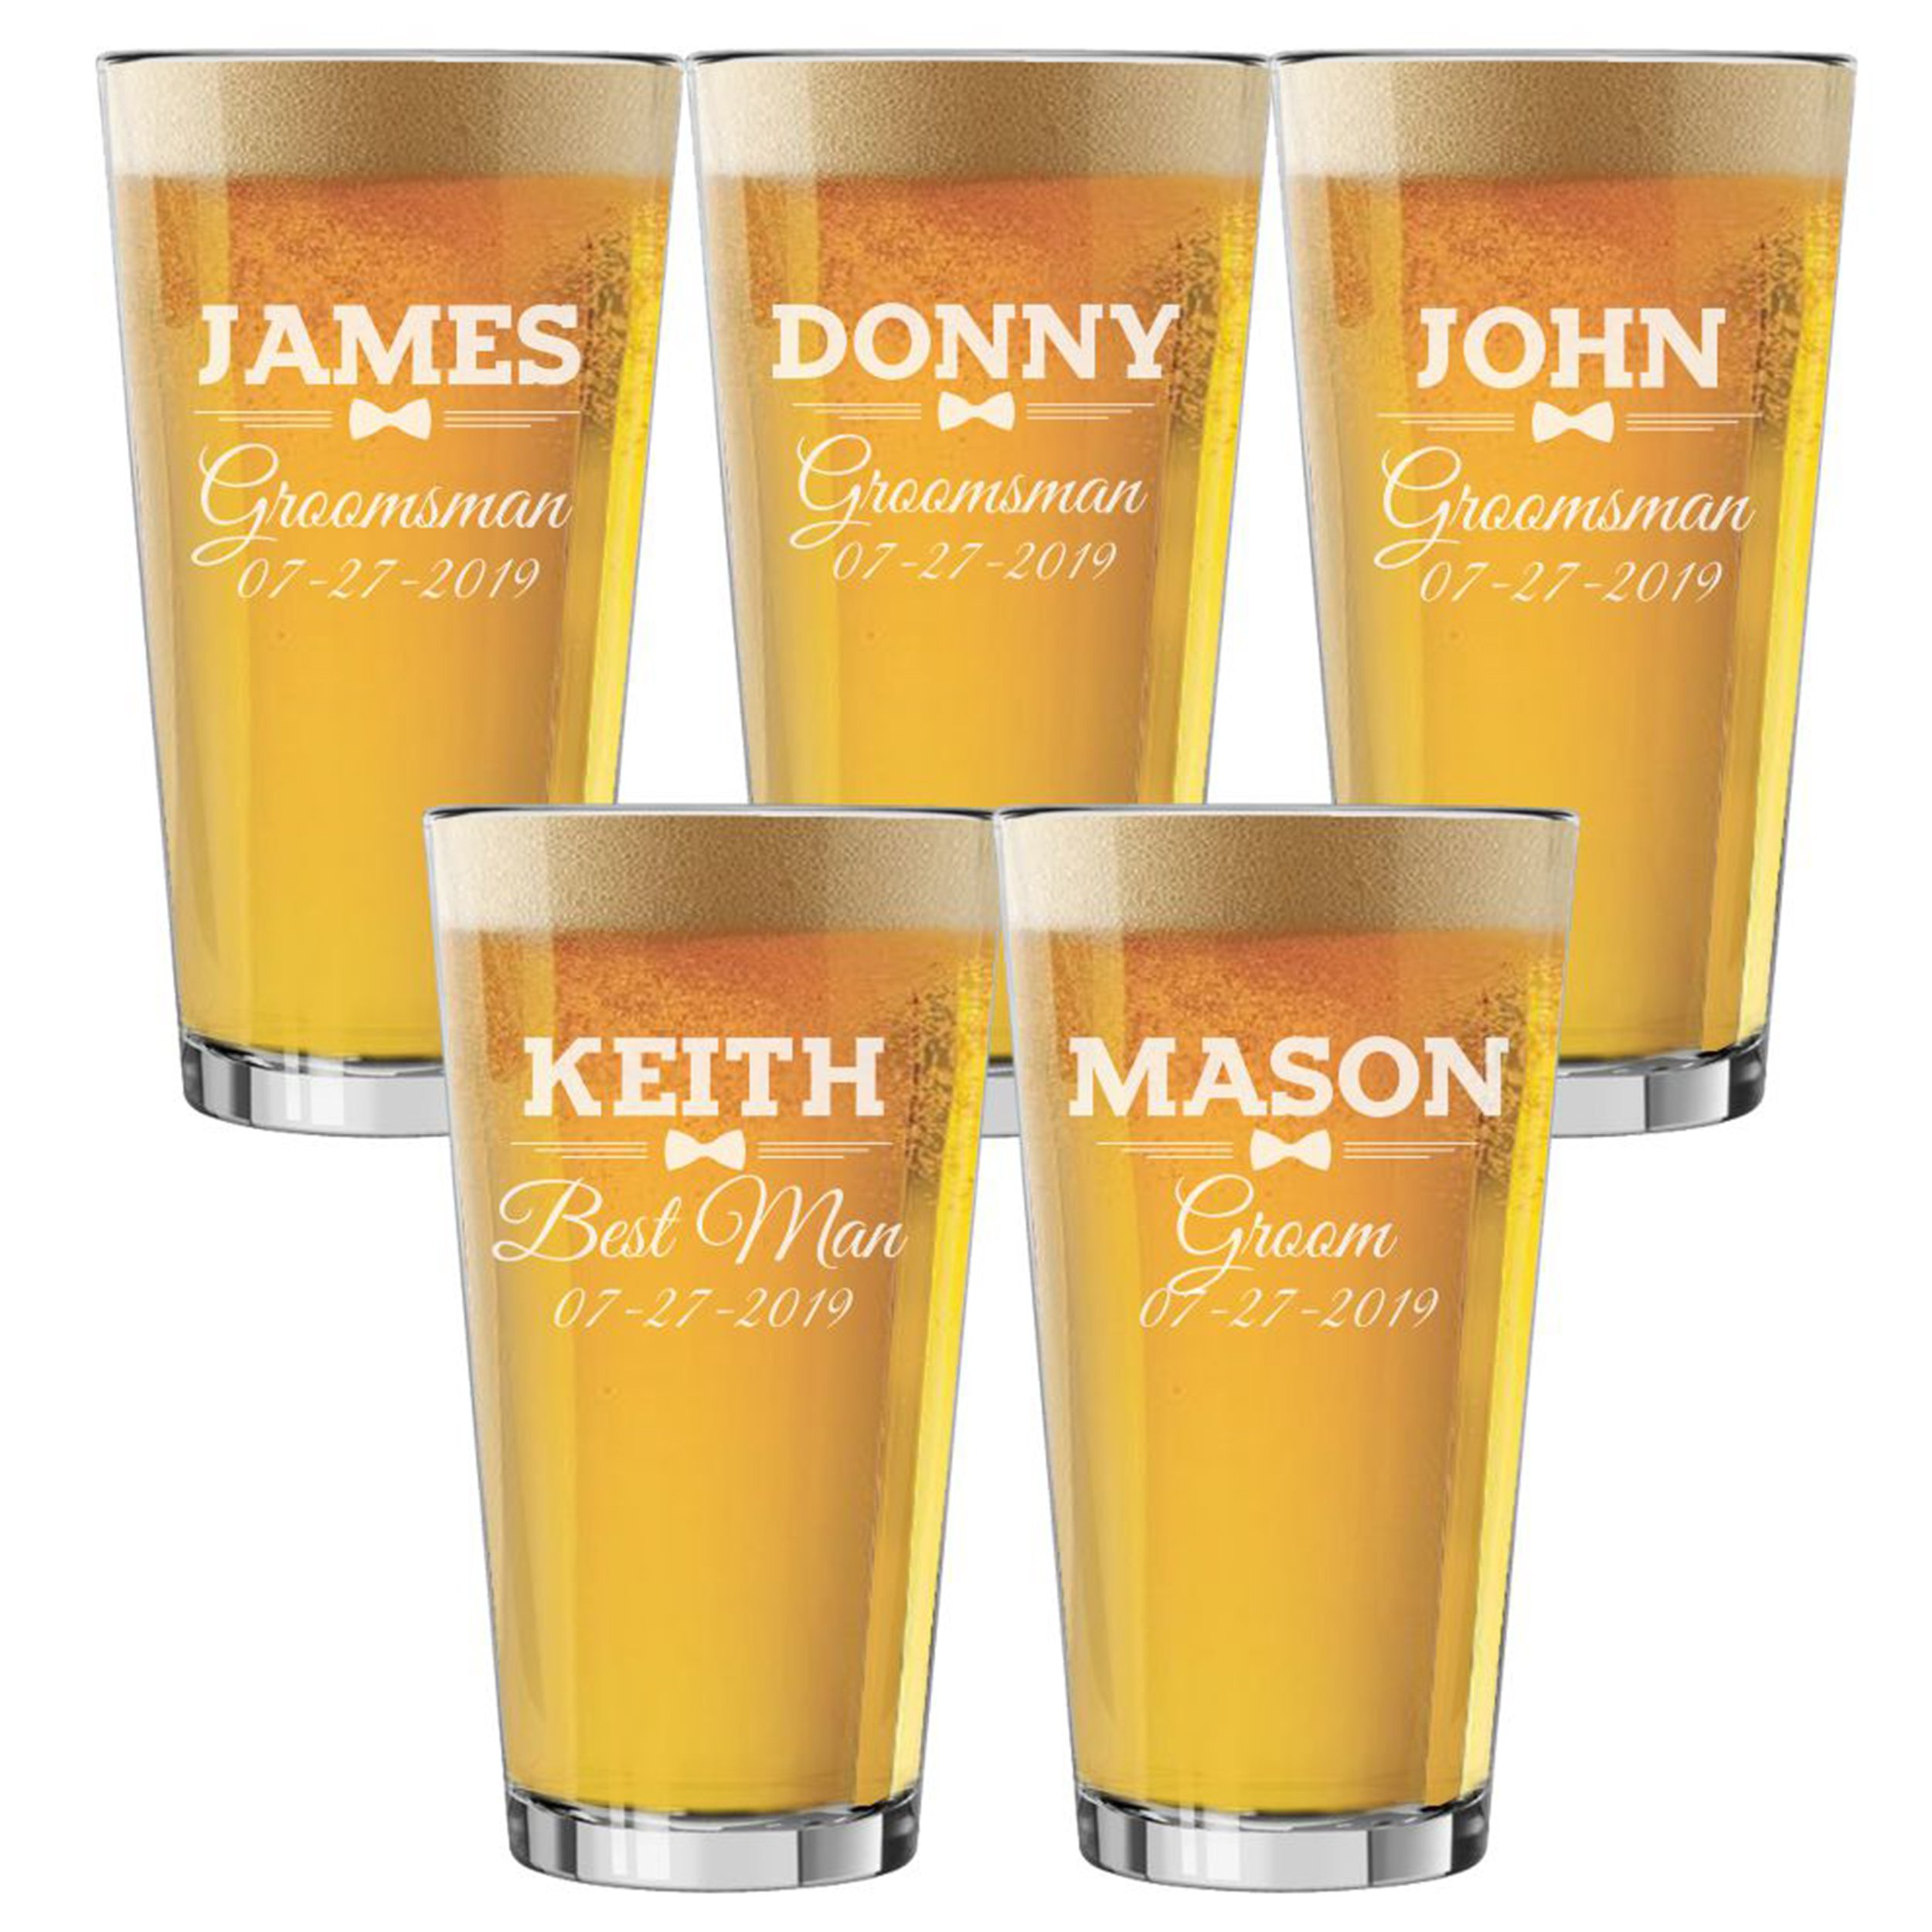 Set of 3, Set of 5, Set of 7 and more Groomsman Wedding Party 16 oz Pint Beer Glasses - Custom Engraved and Personalized for Free - Bow Tie Style (5)